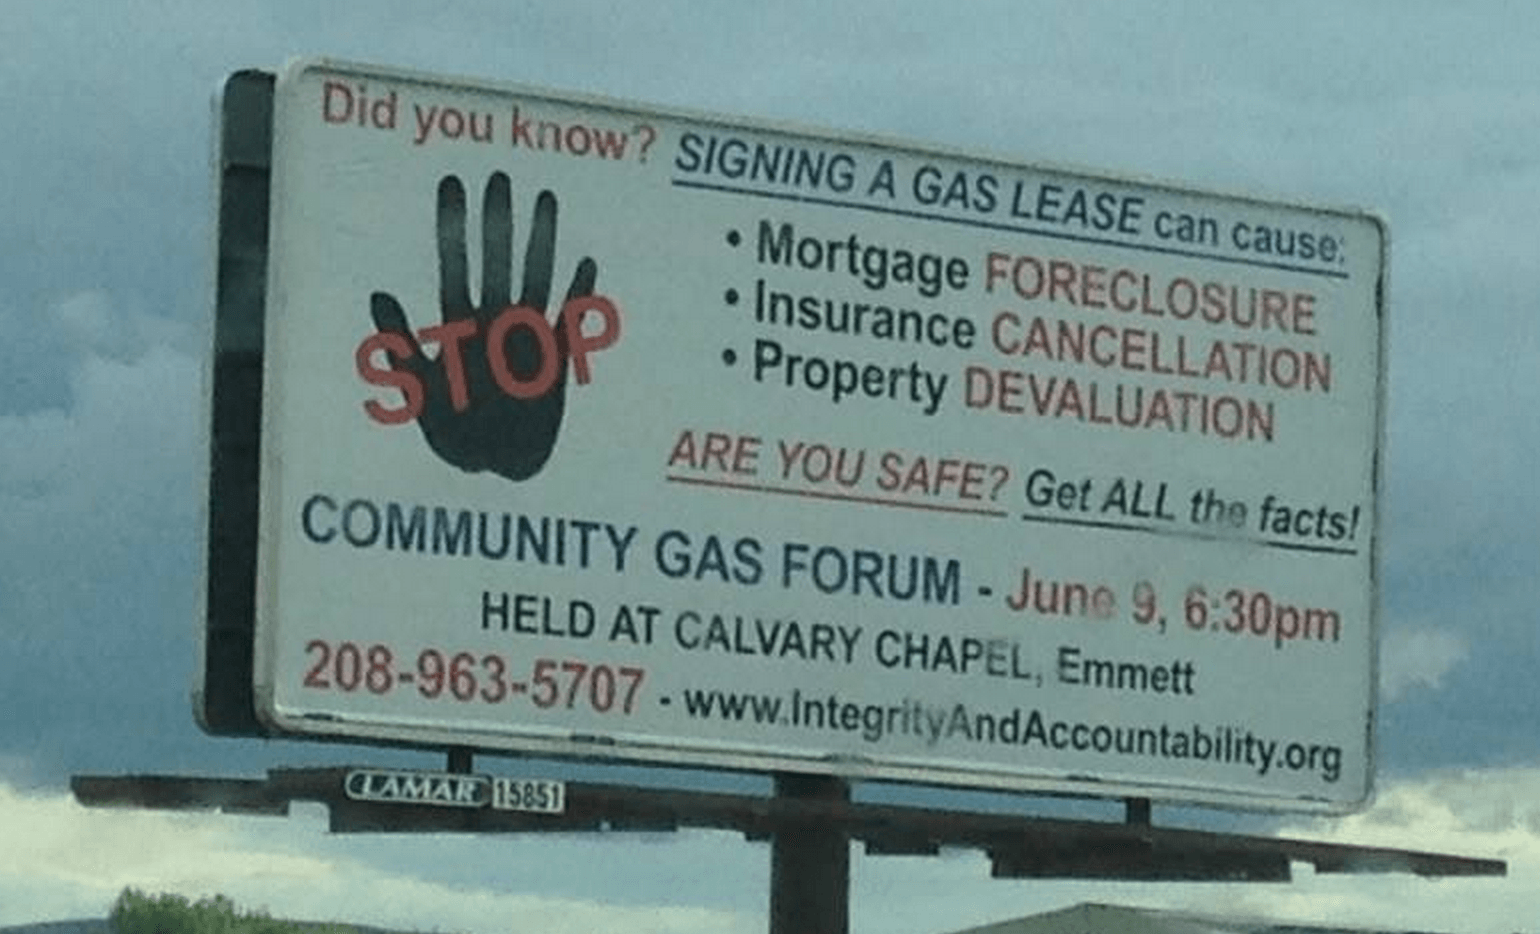 Idaho Groups Schedule Town Hall to Warn Citizens About Dangers of Signing Gas Leases